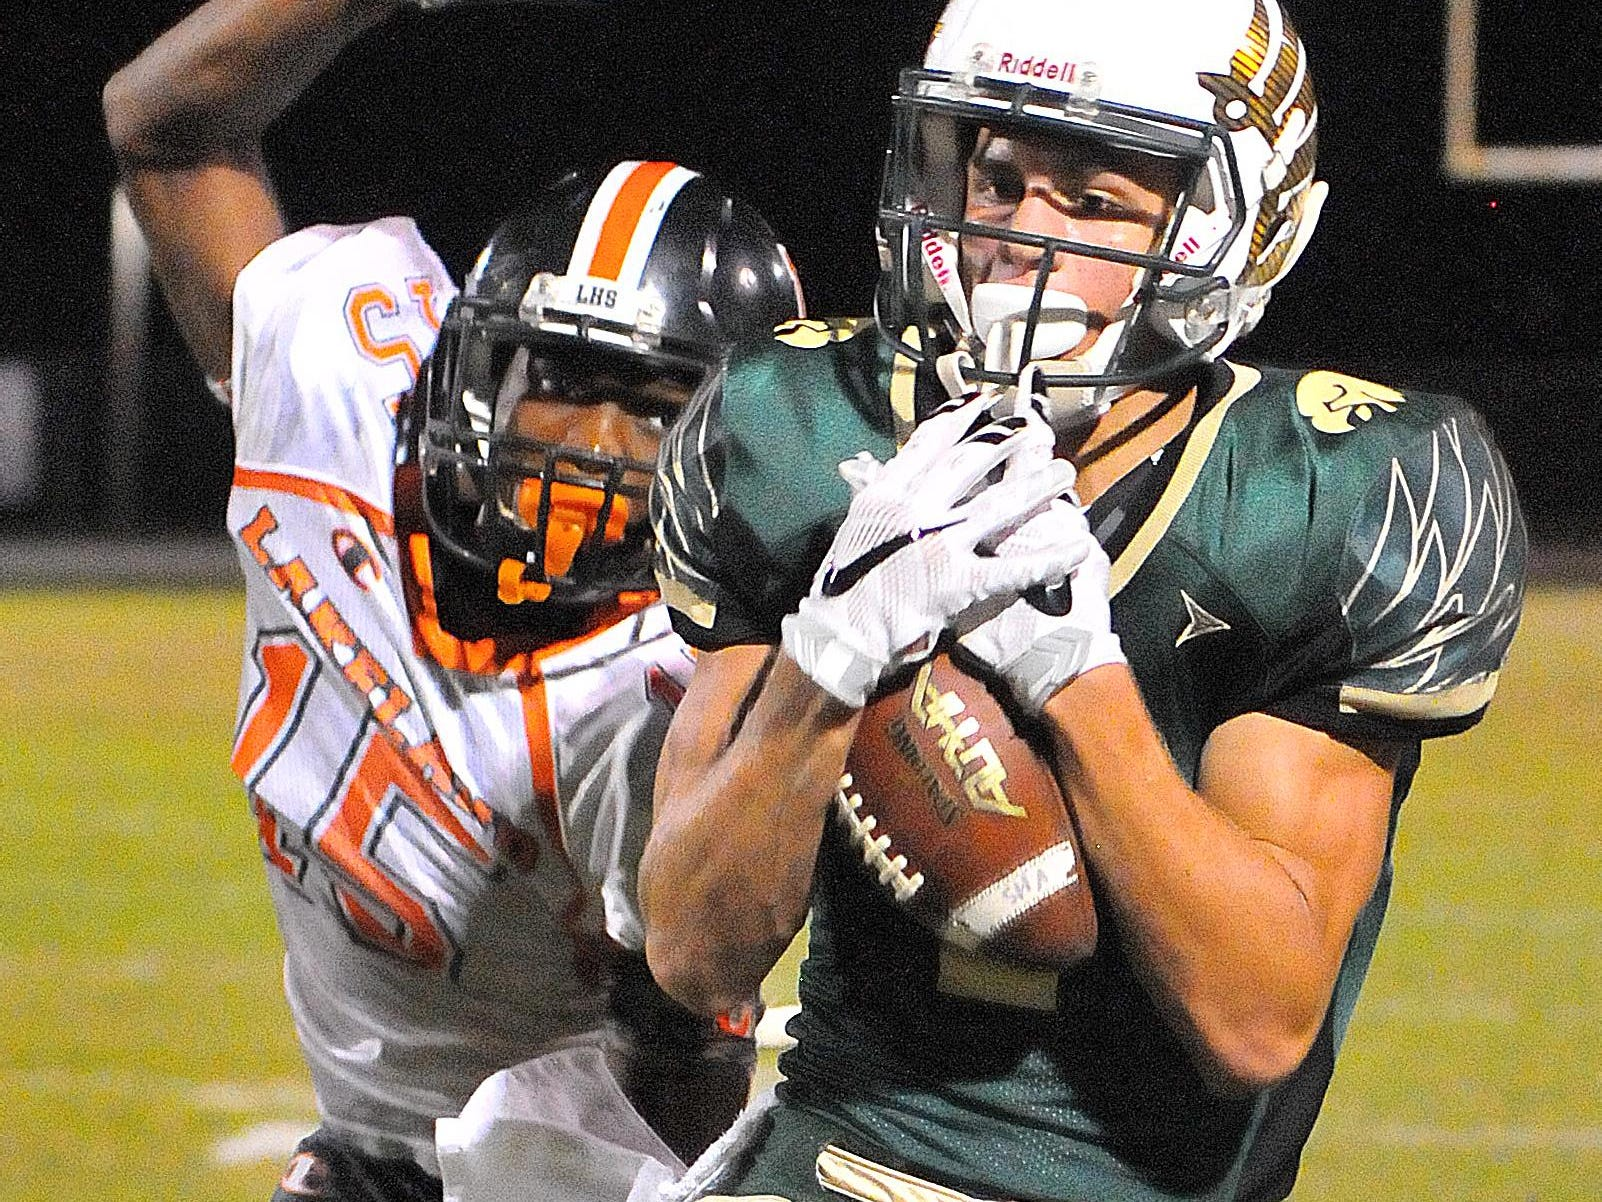 Viera High's Tre Nixon comes down with a nice catch in front of Lakeland's Damarri Mathis for a first down during Friday night's regional finals held at Viera High School Stadium.